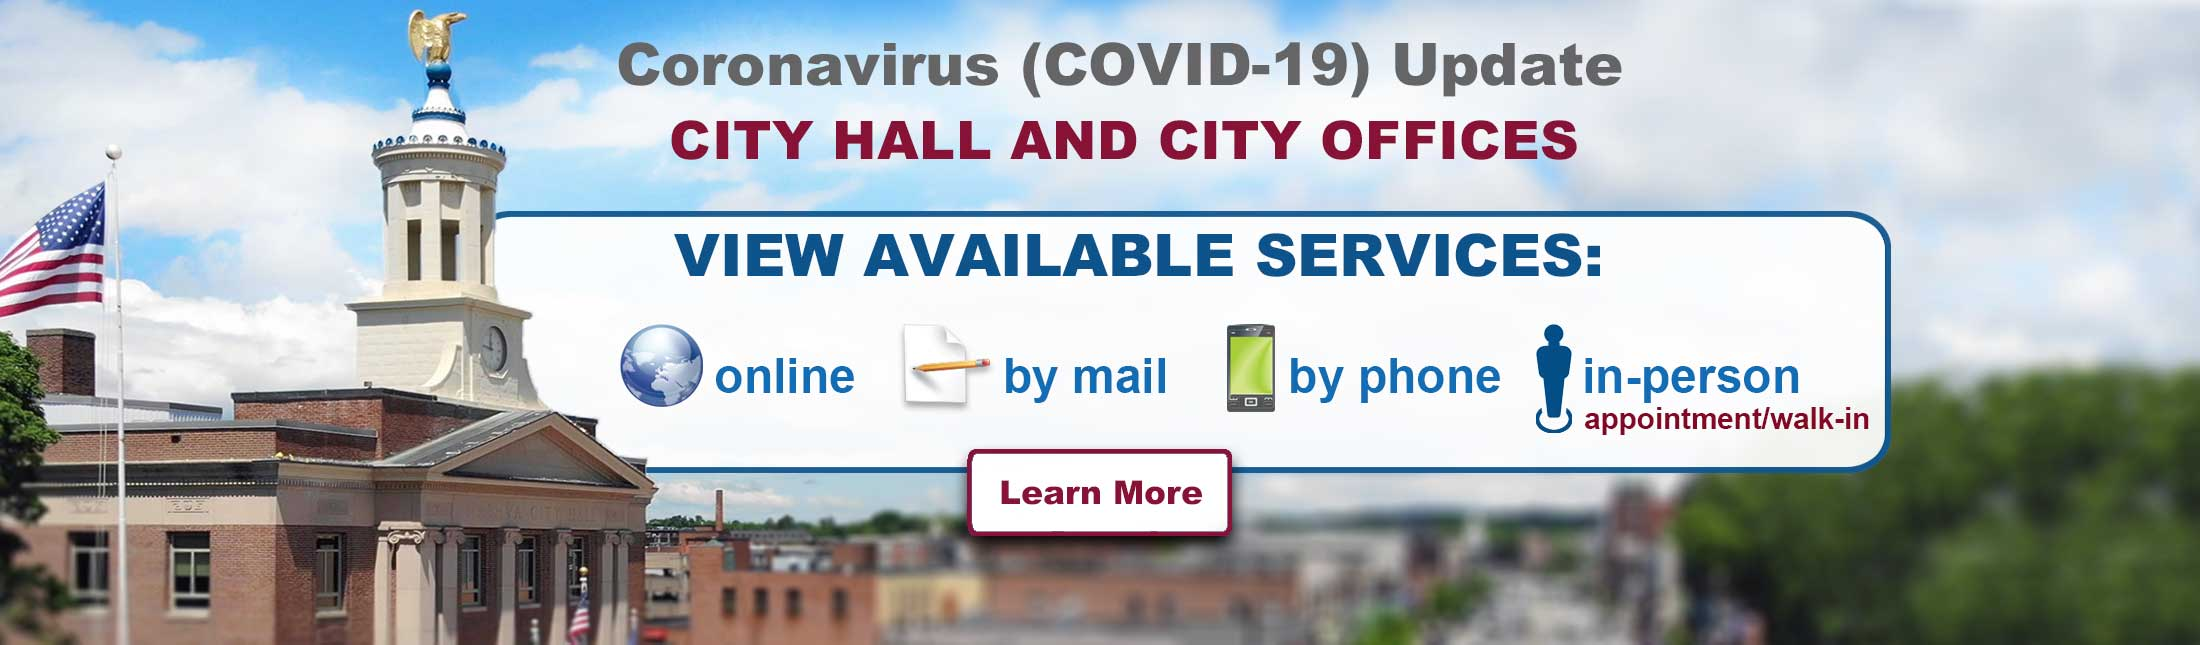 City Offices Closed - View available services